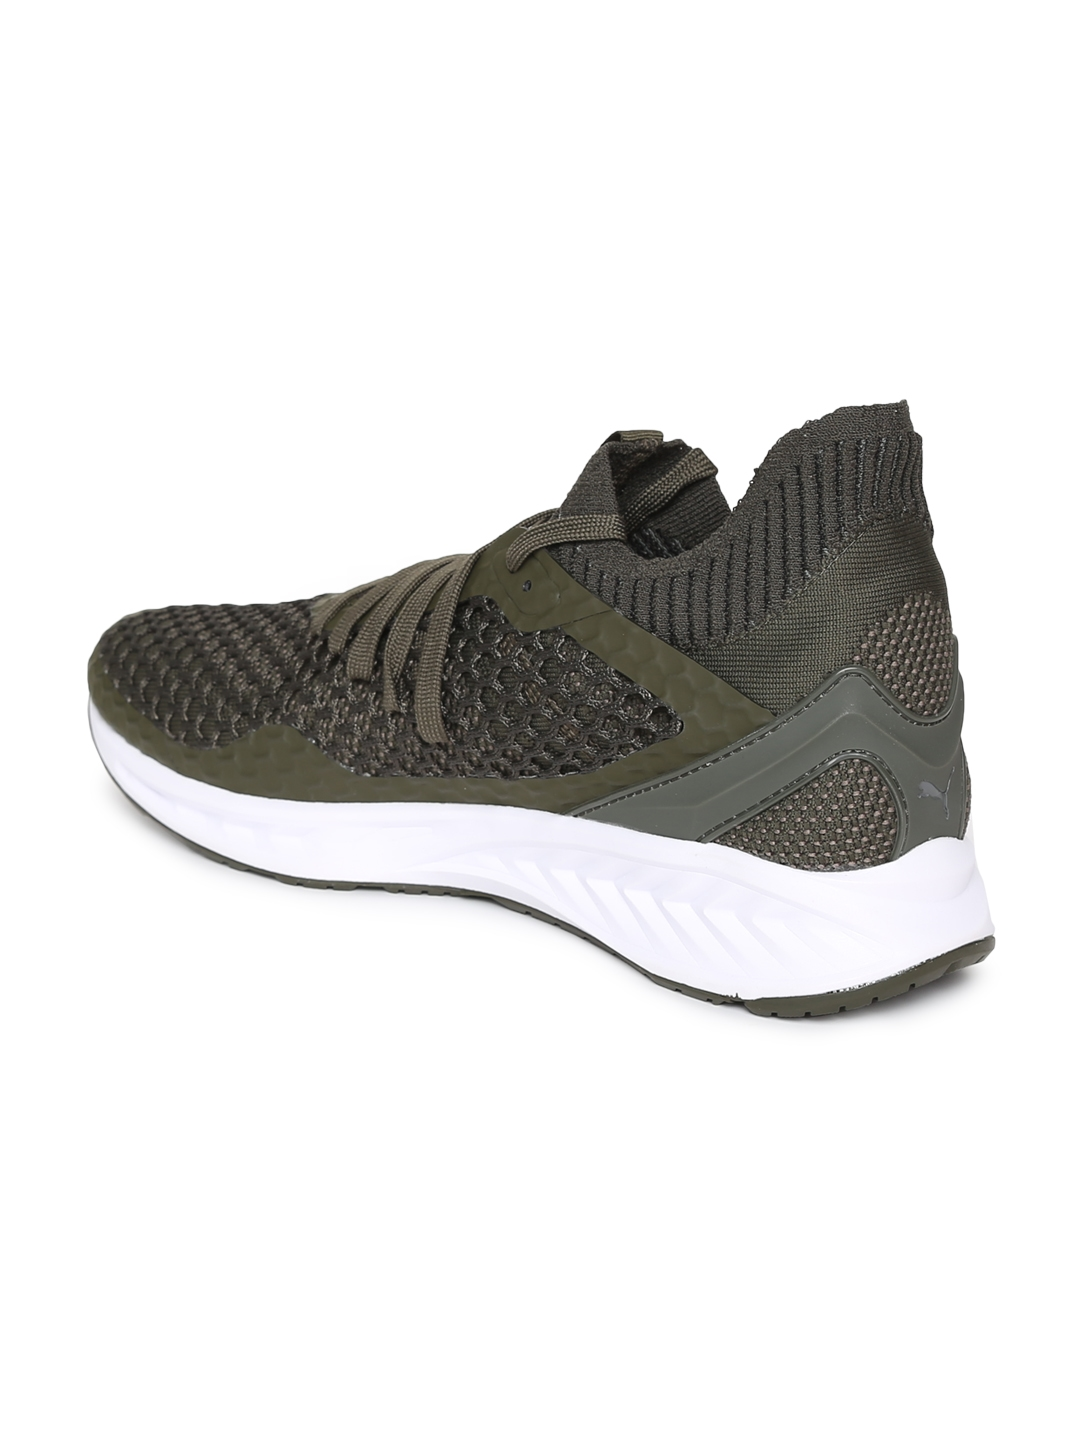 a7a686505a8 Buy Puma Men Olive Green IGNITE NETFIT Sports Running Shoes - Sports ...